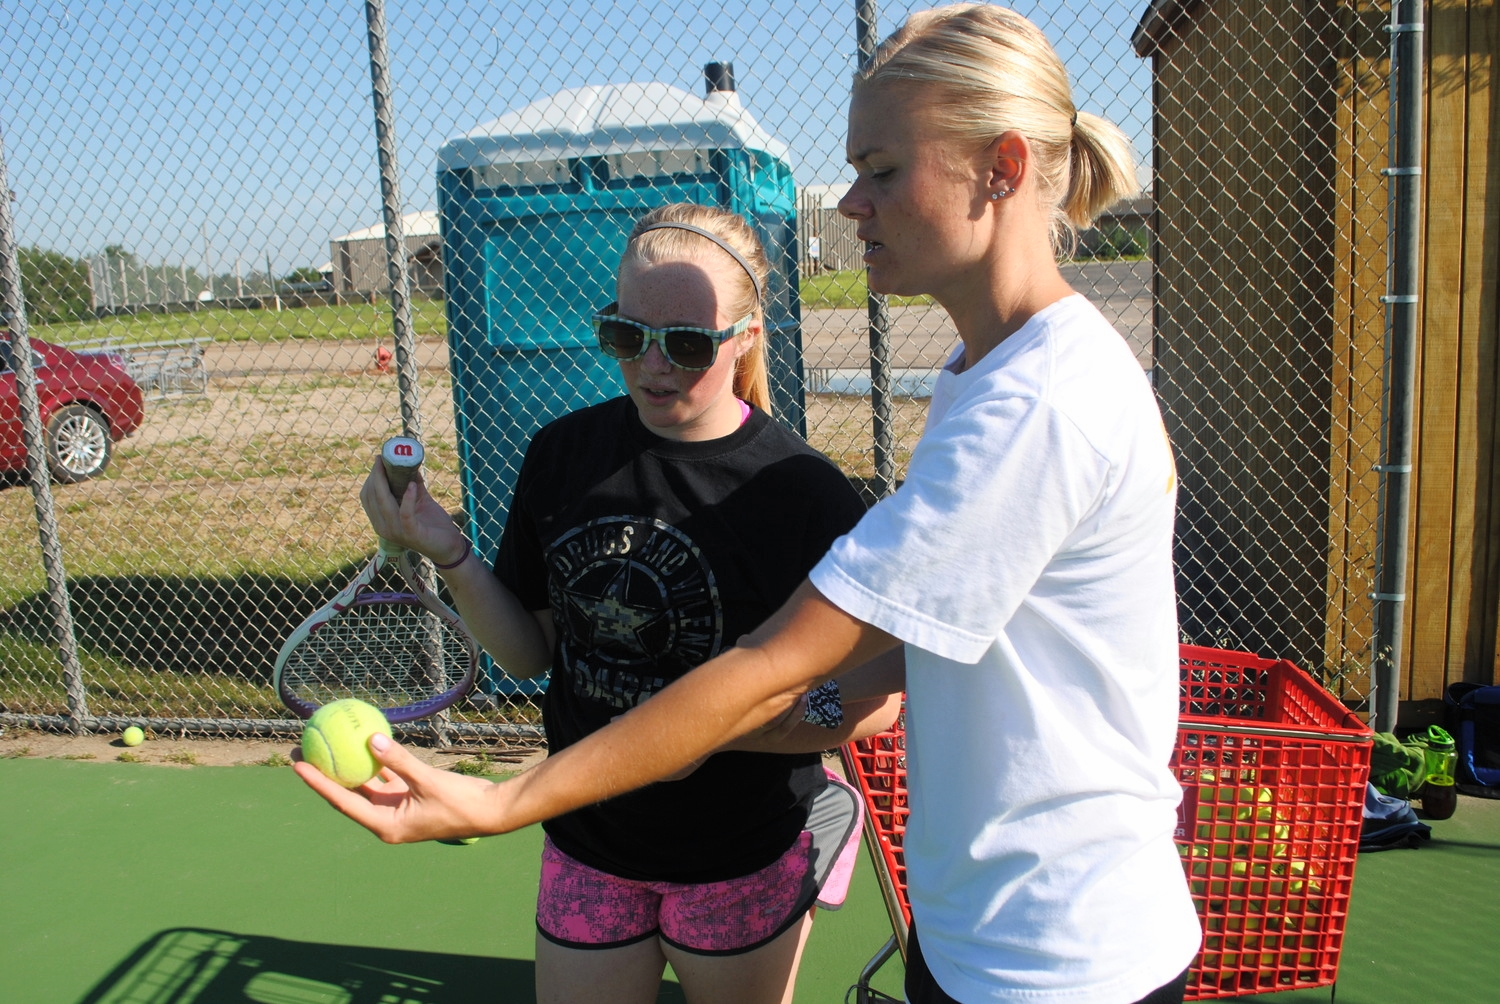 Coach Wahlin giving Sarah Moen pointers at practice. (Photo by Dana Pavek, WDC Schools)